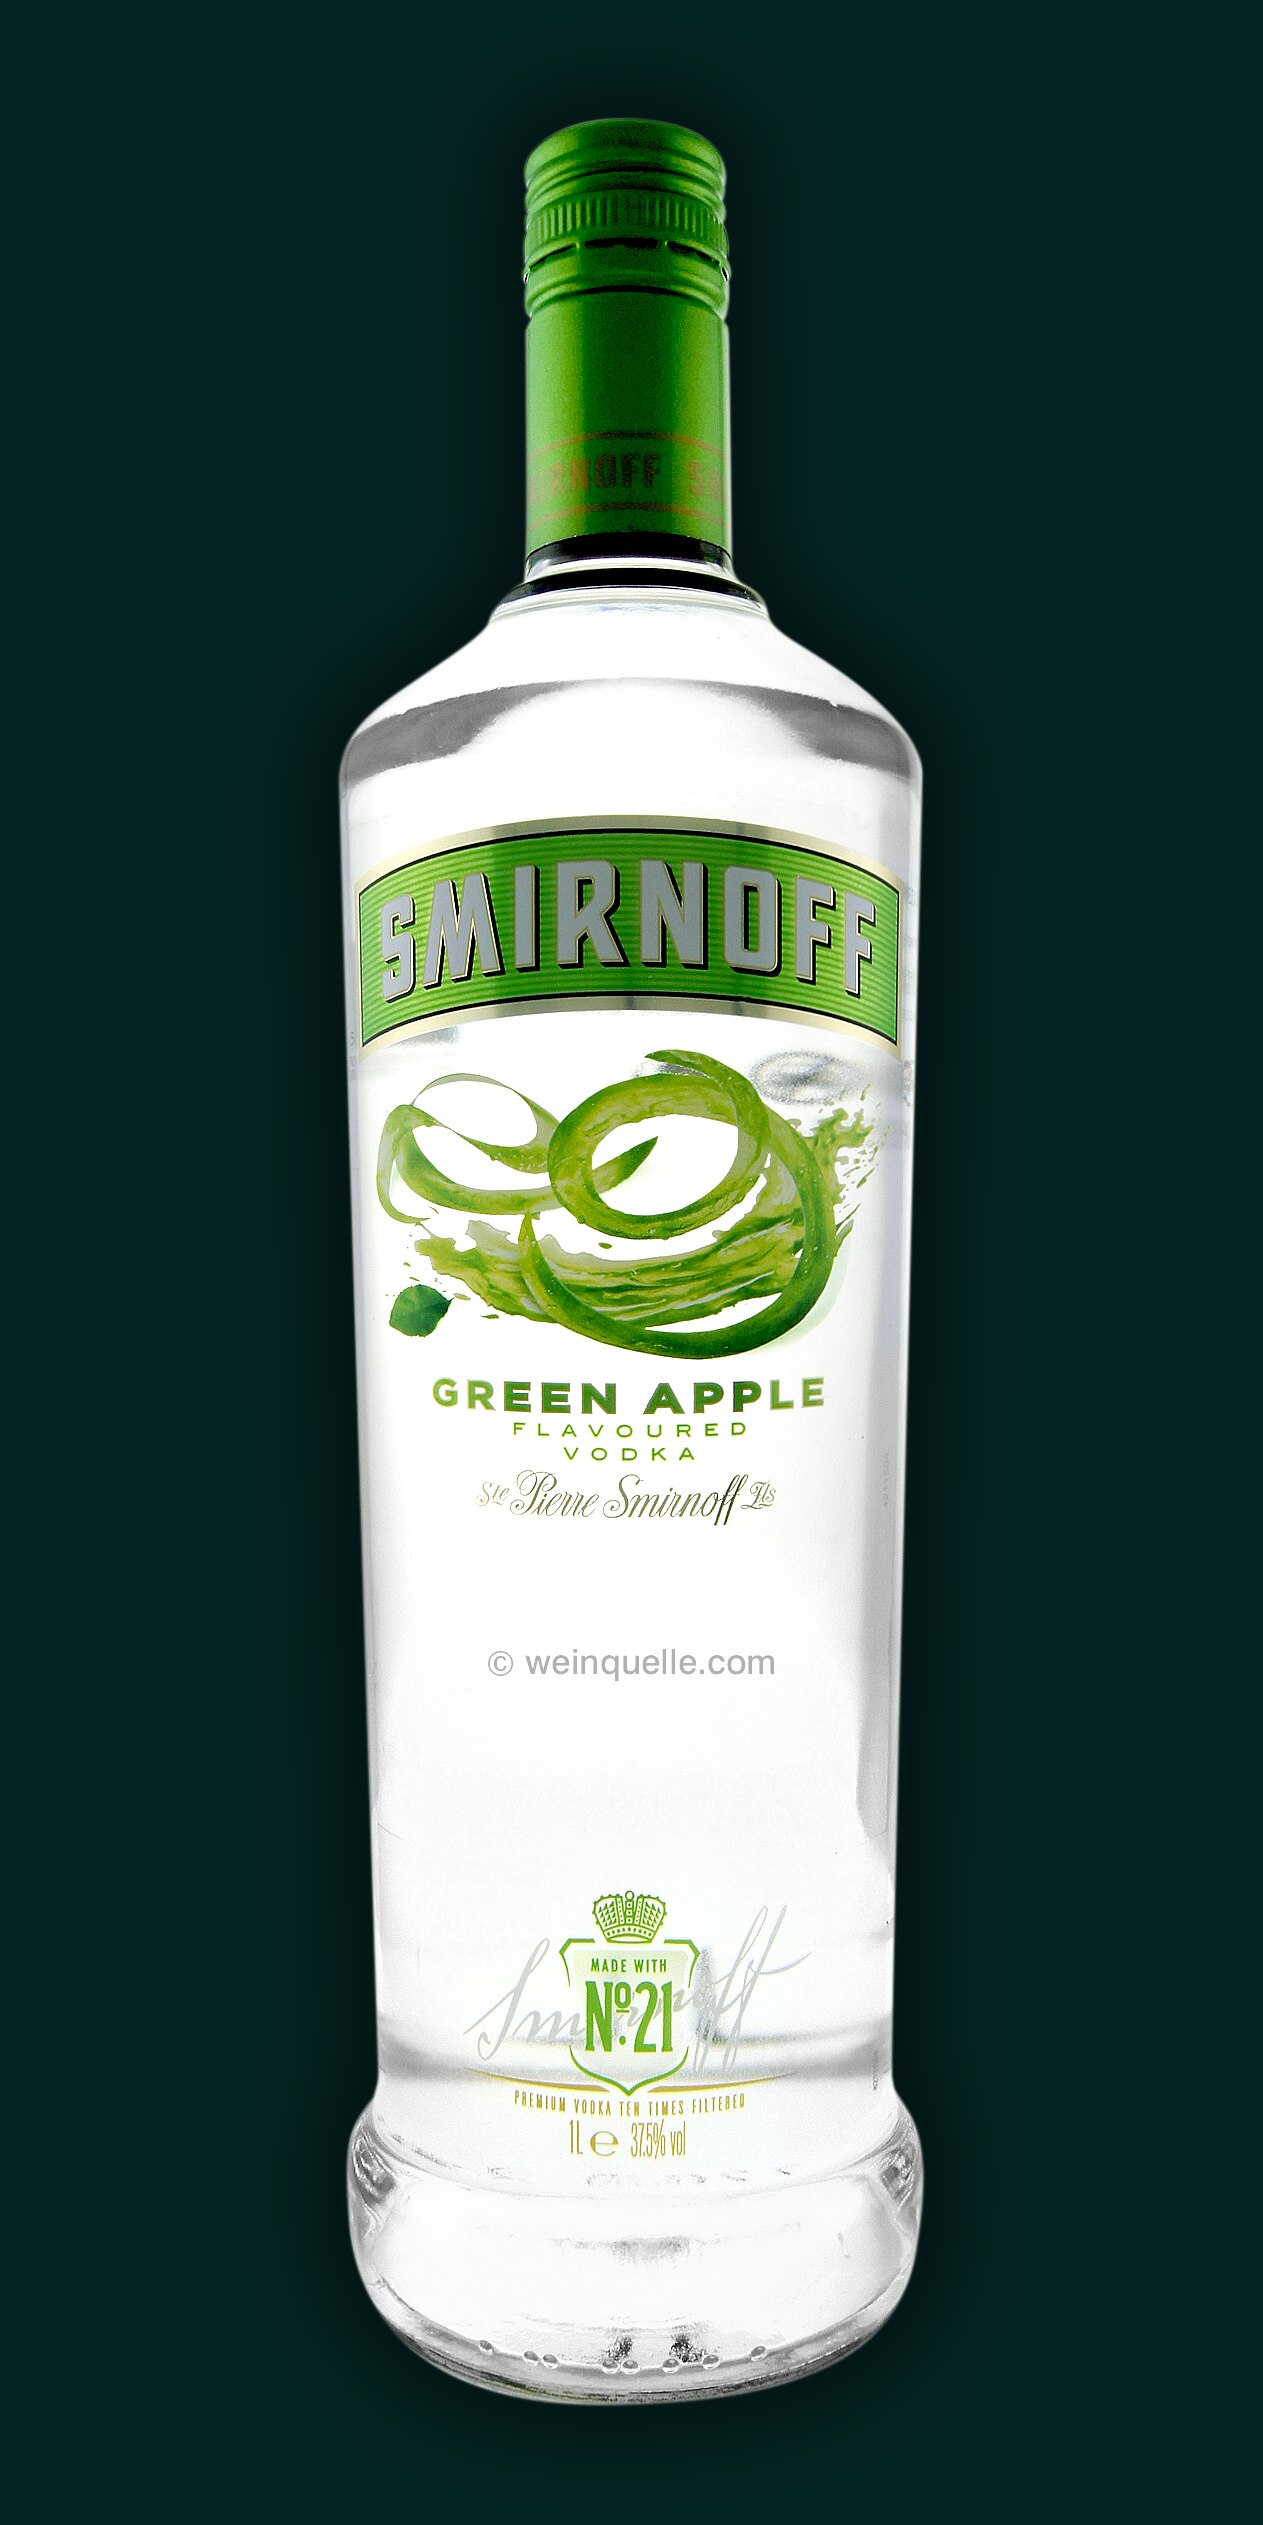 smirnoff green apple 1 0 liter 15 30 weinquelle l hmann. Black Bedroom Furniture Sets. Home Design Ideas